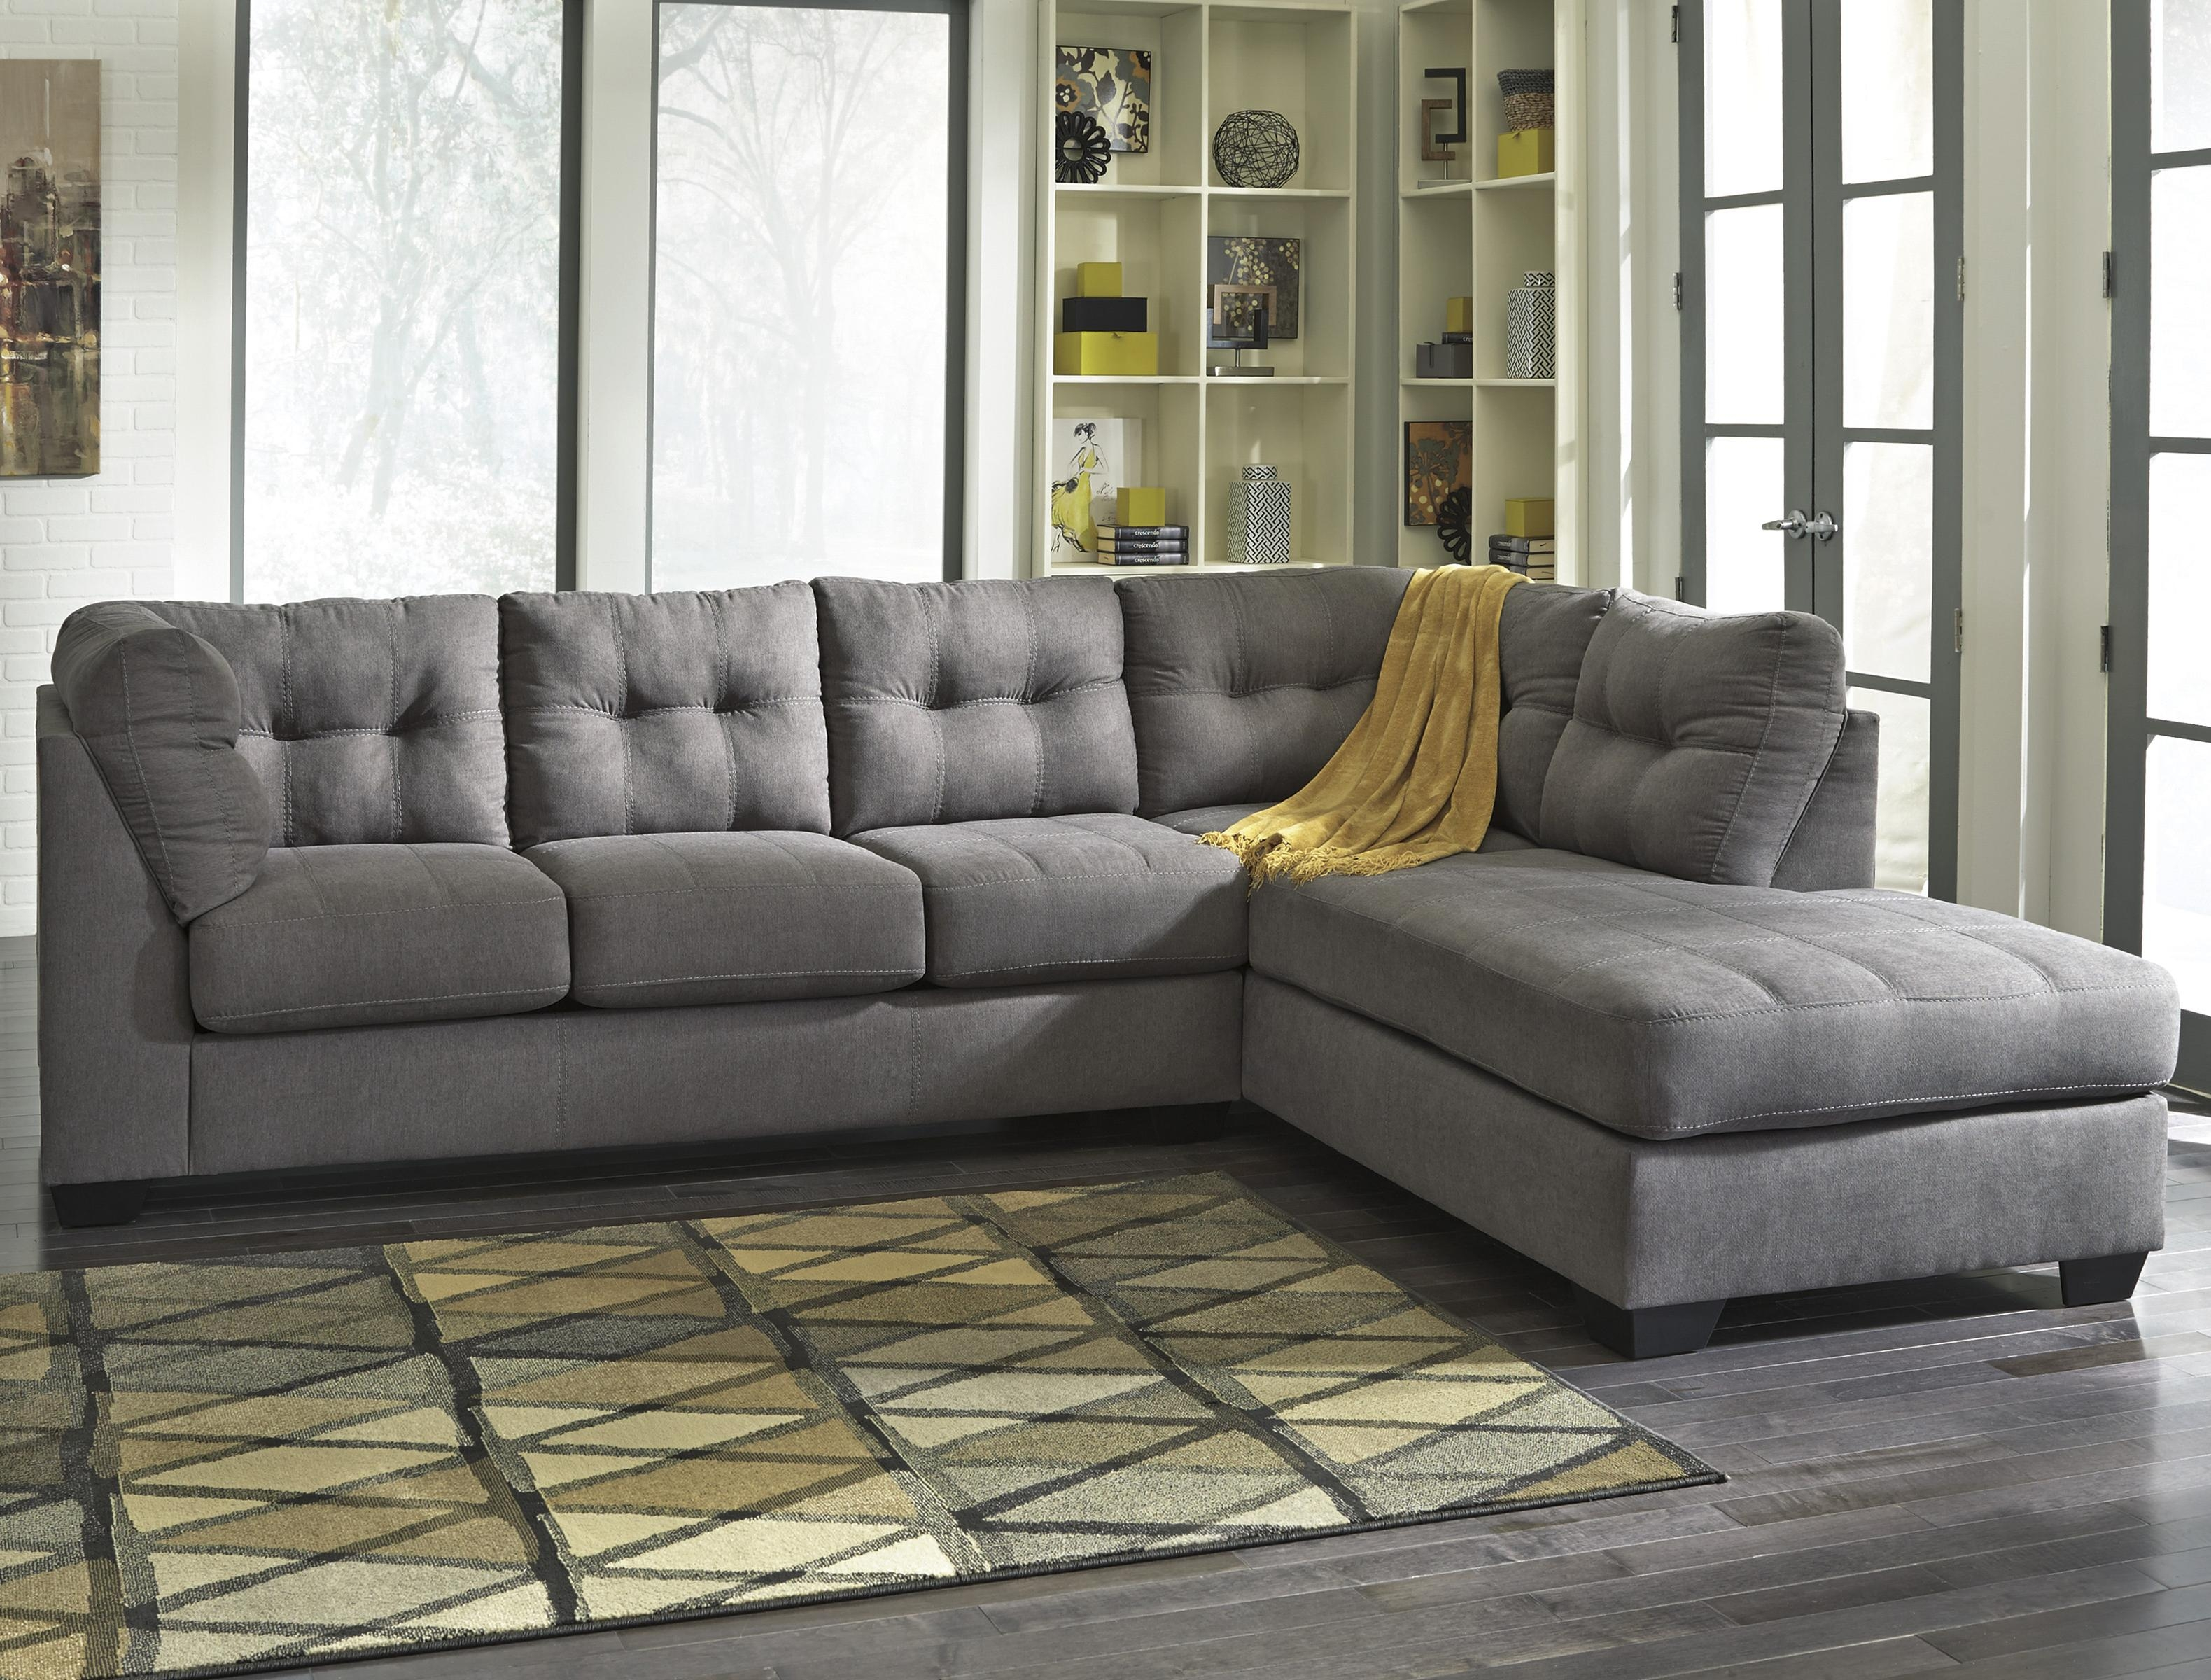 Inspiring Gray Sectional Sofa With Chaise Lounge 74 In 3 Piece Pertaining To 3 Piece Sectional Sofa Slipcovers (#7 of 12)